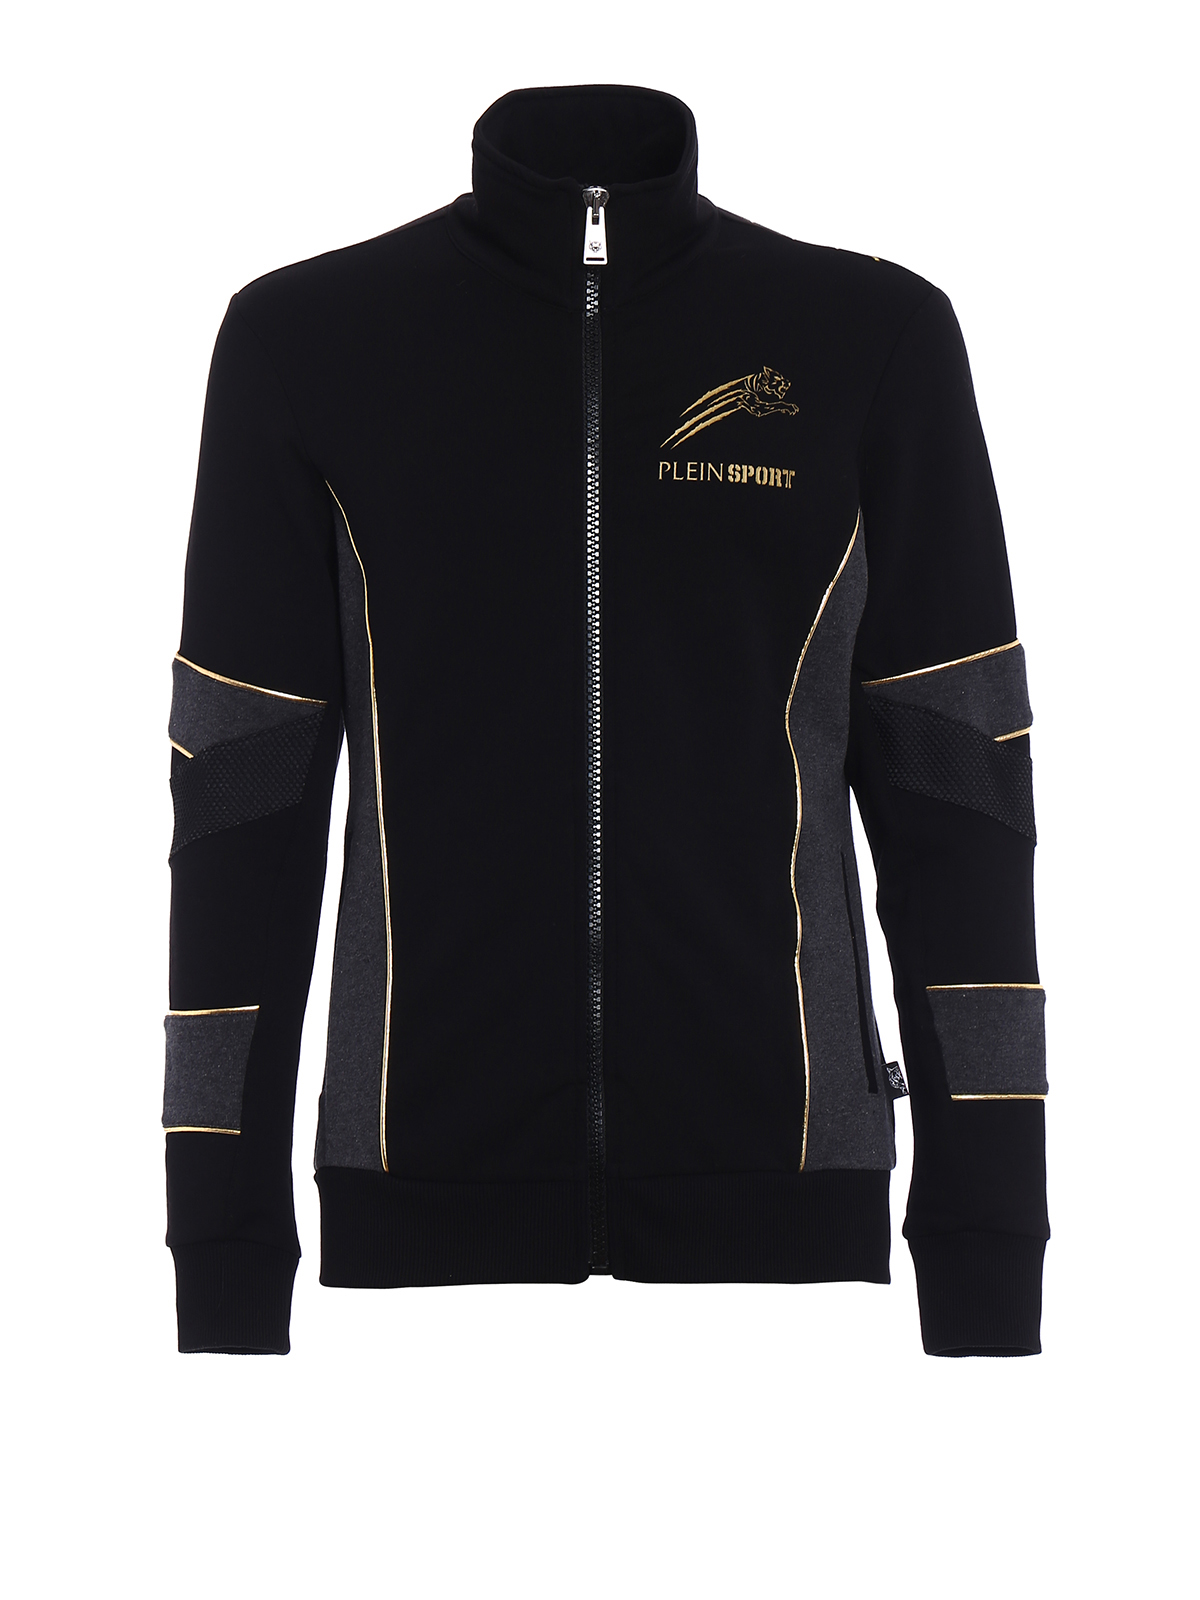 gold cotton sweat jacket by philipp plein sweatshirts sweaters ikrix. Black Bedroom Furniture Sets. Home Design Ideas